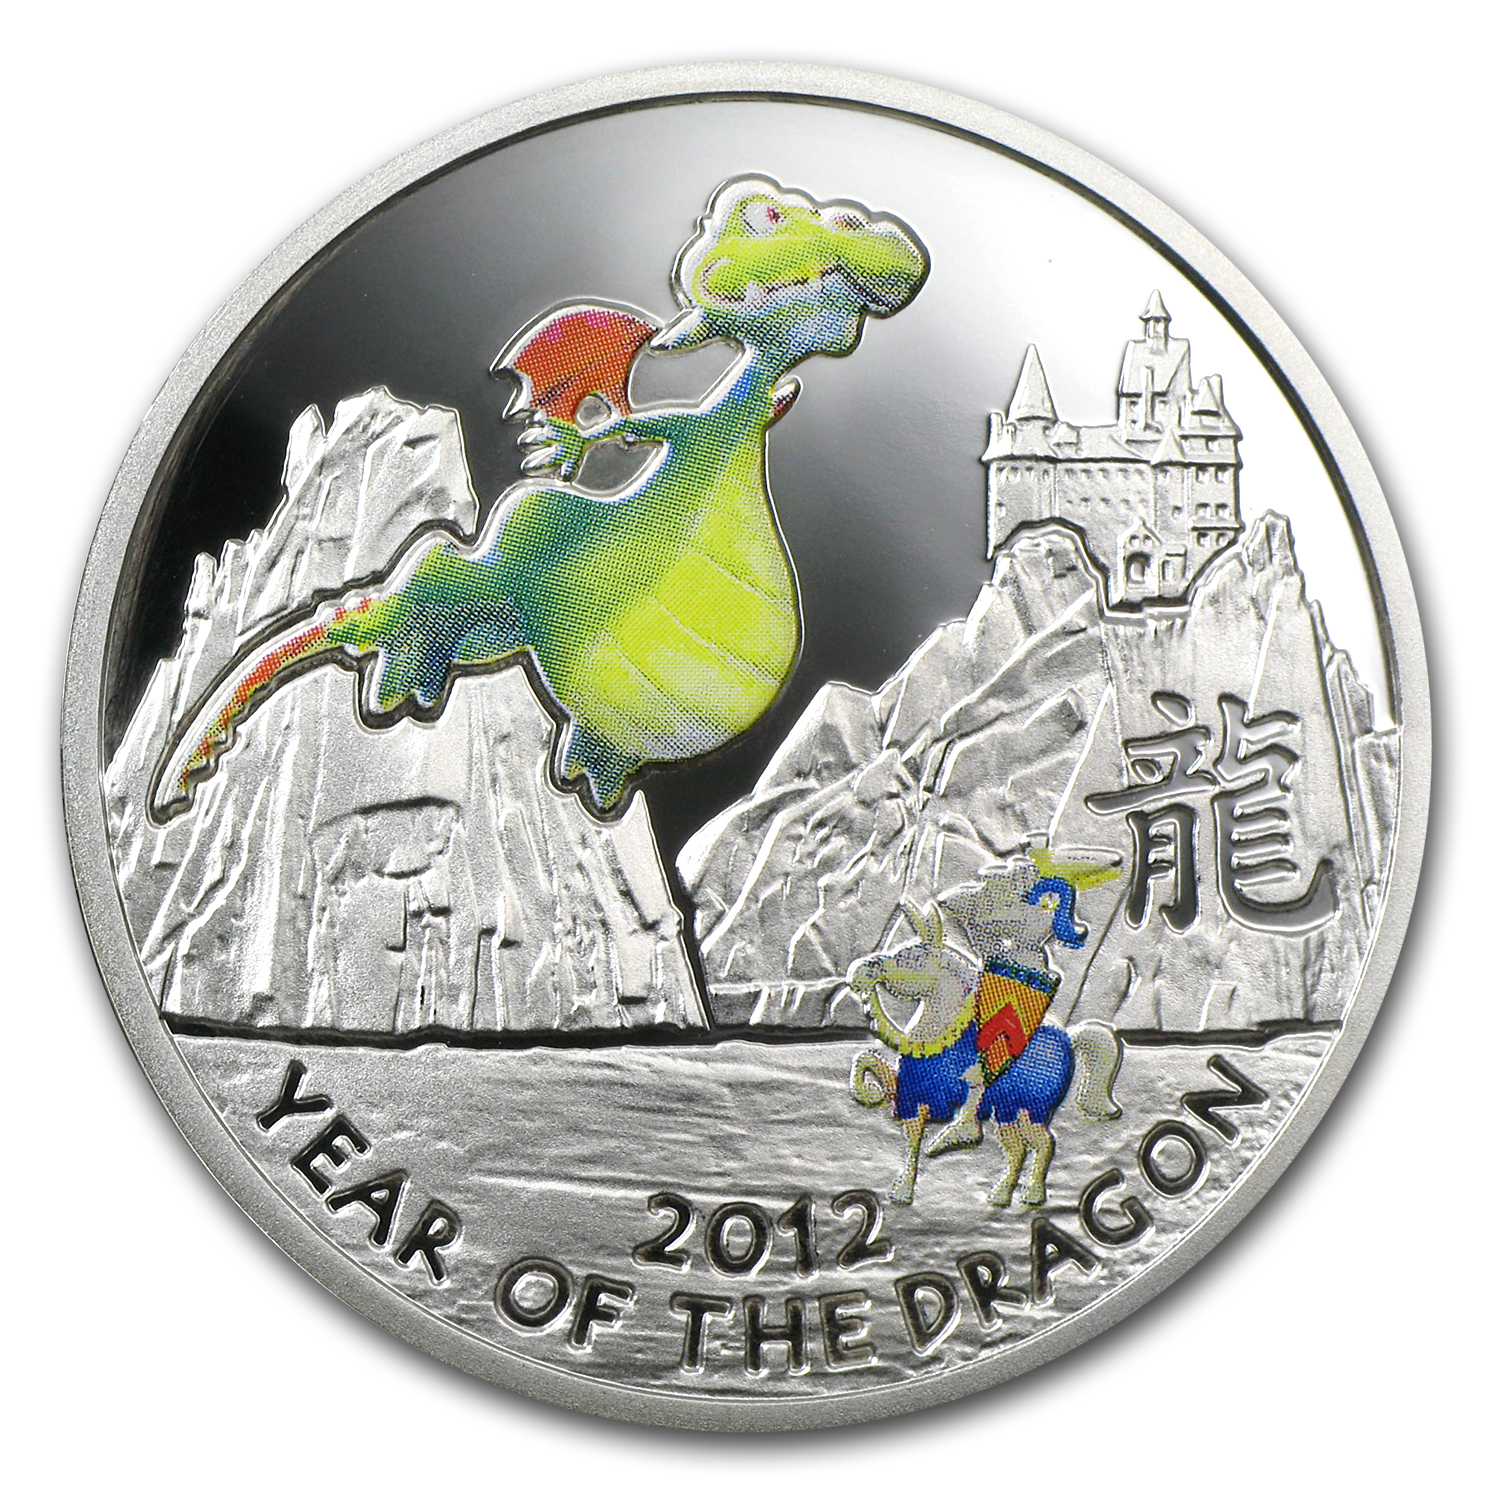 2011 Niue Proof Silver 2012 Year of the Dragon Fairy Tale Dragon